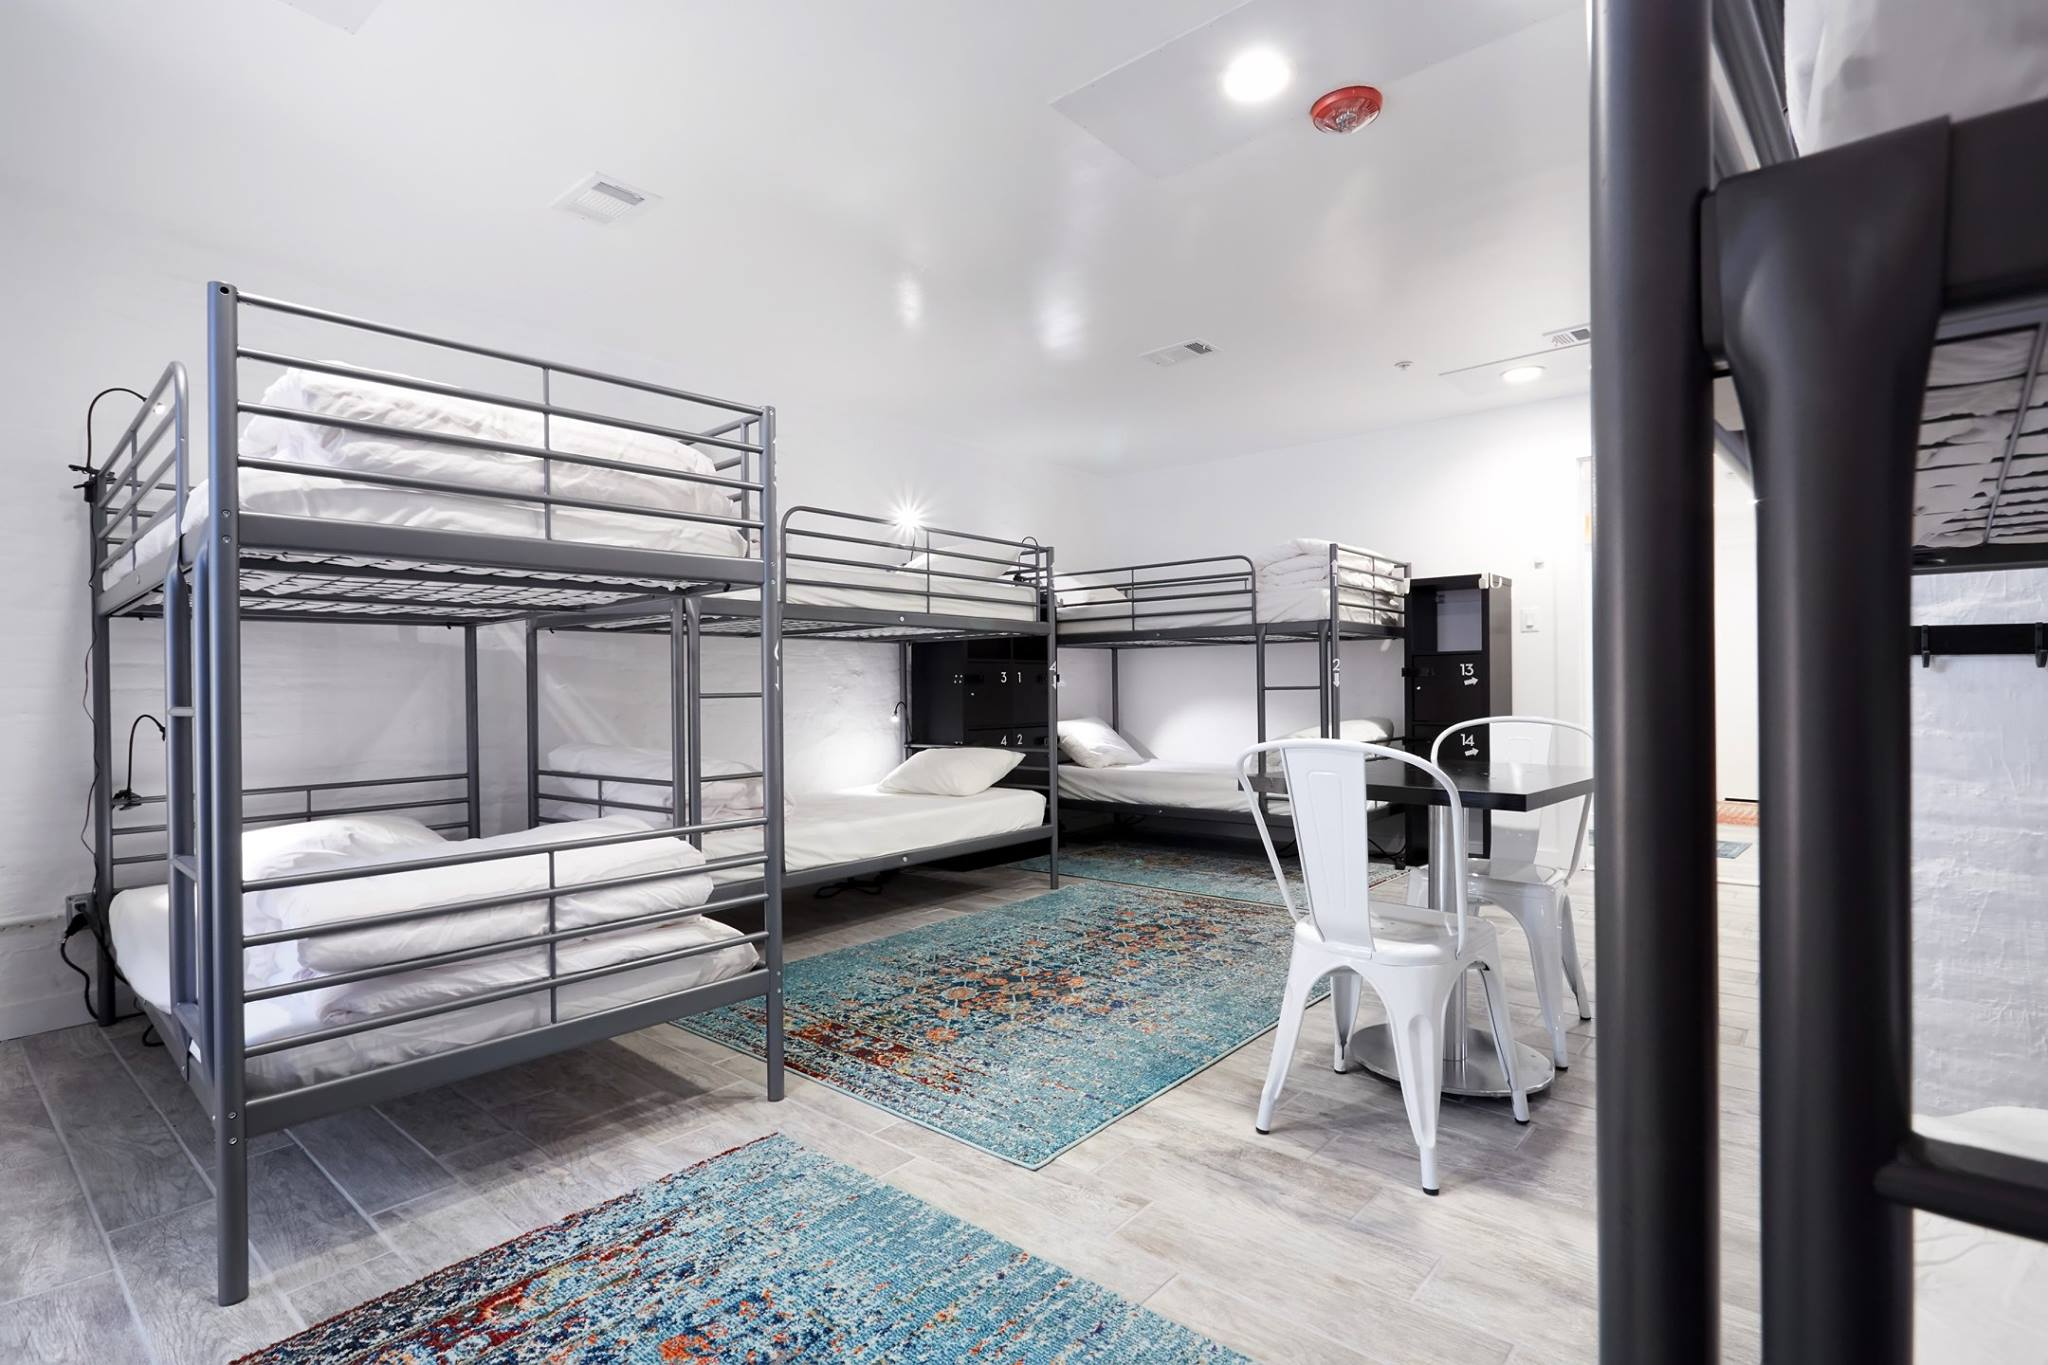 Bunk beds arranged in a bright backpackers dorm room